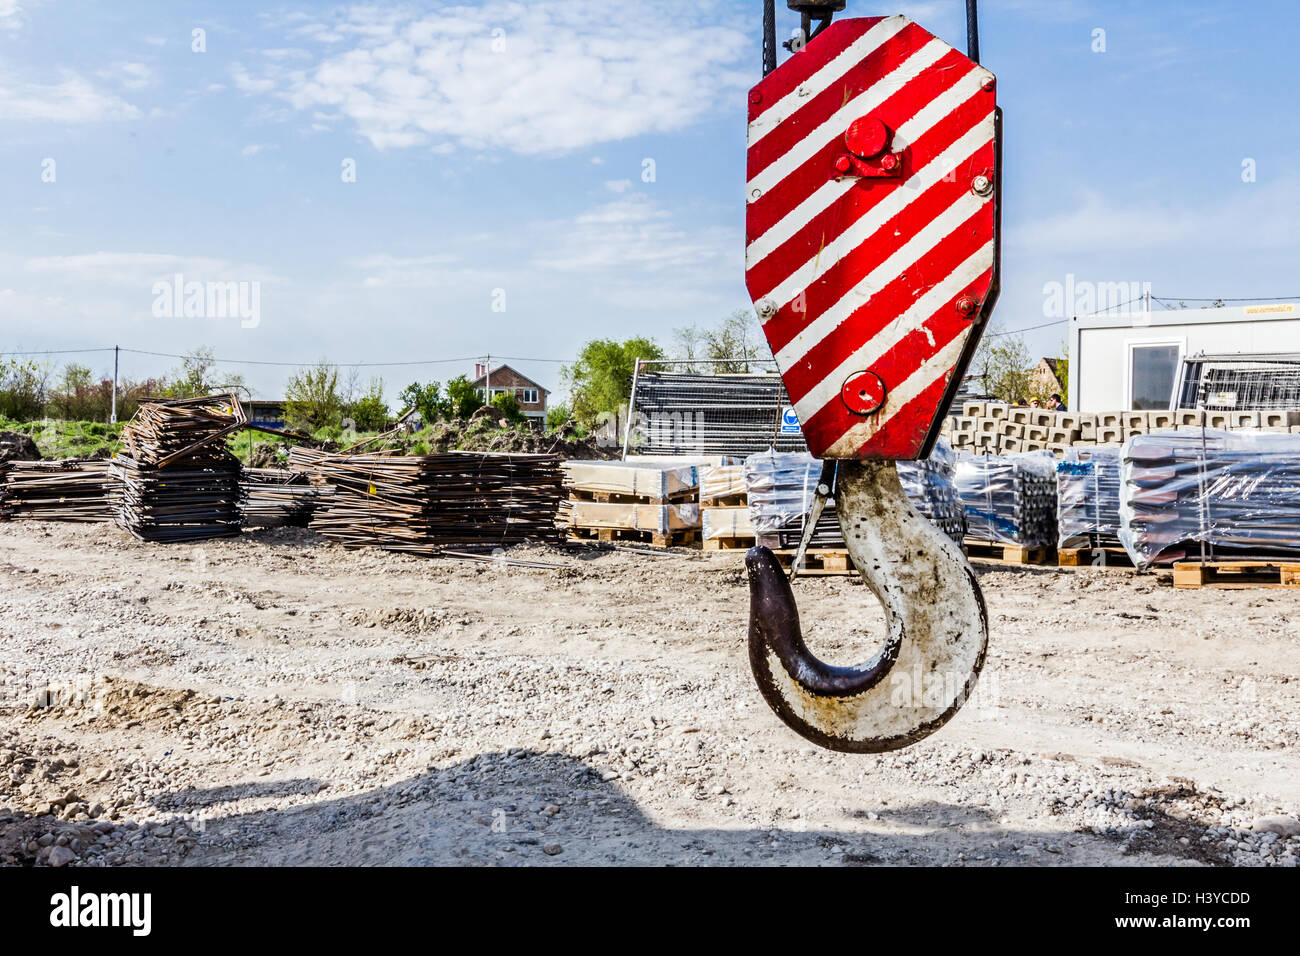 White crane hook with red stripes is hanging, armature stack in background. - Stock Image